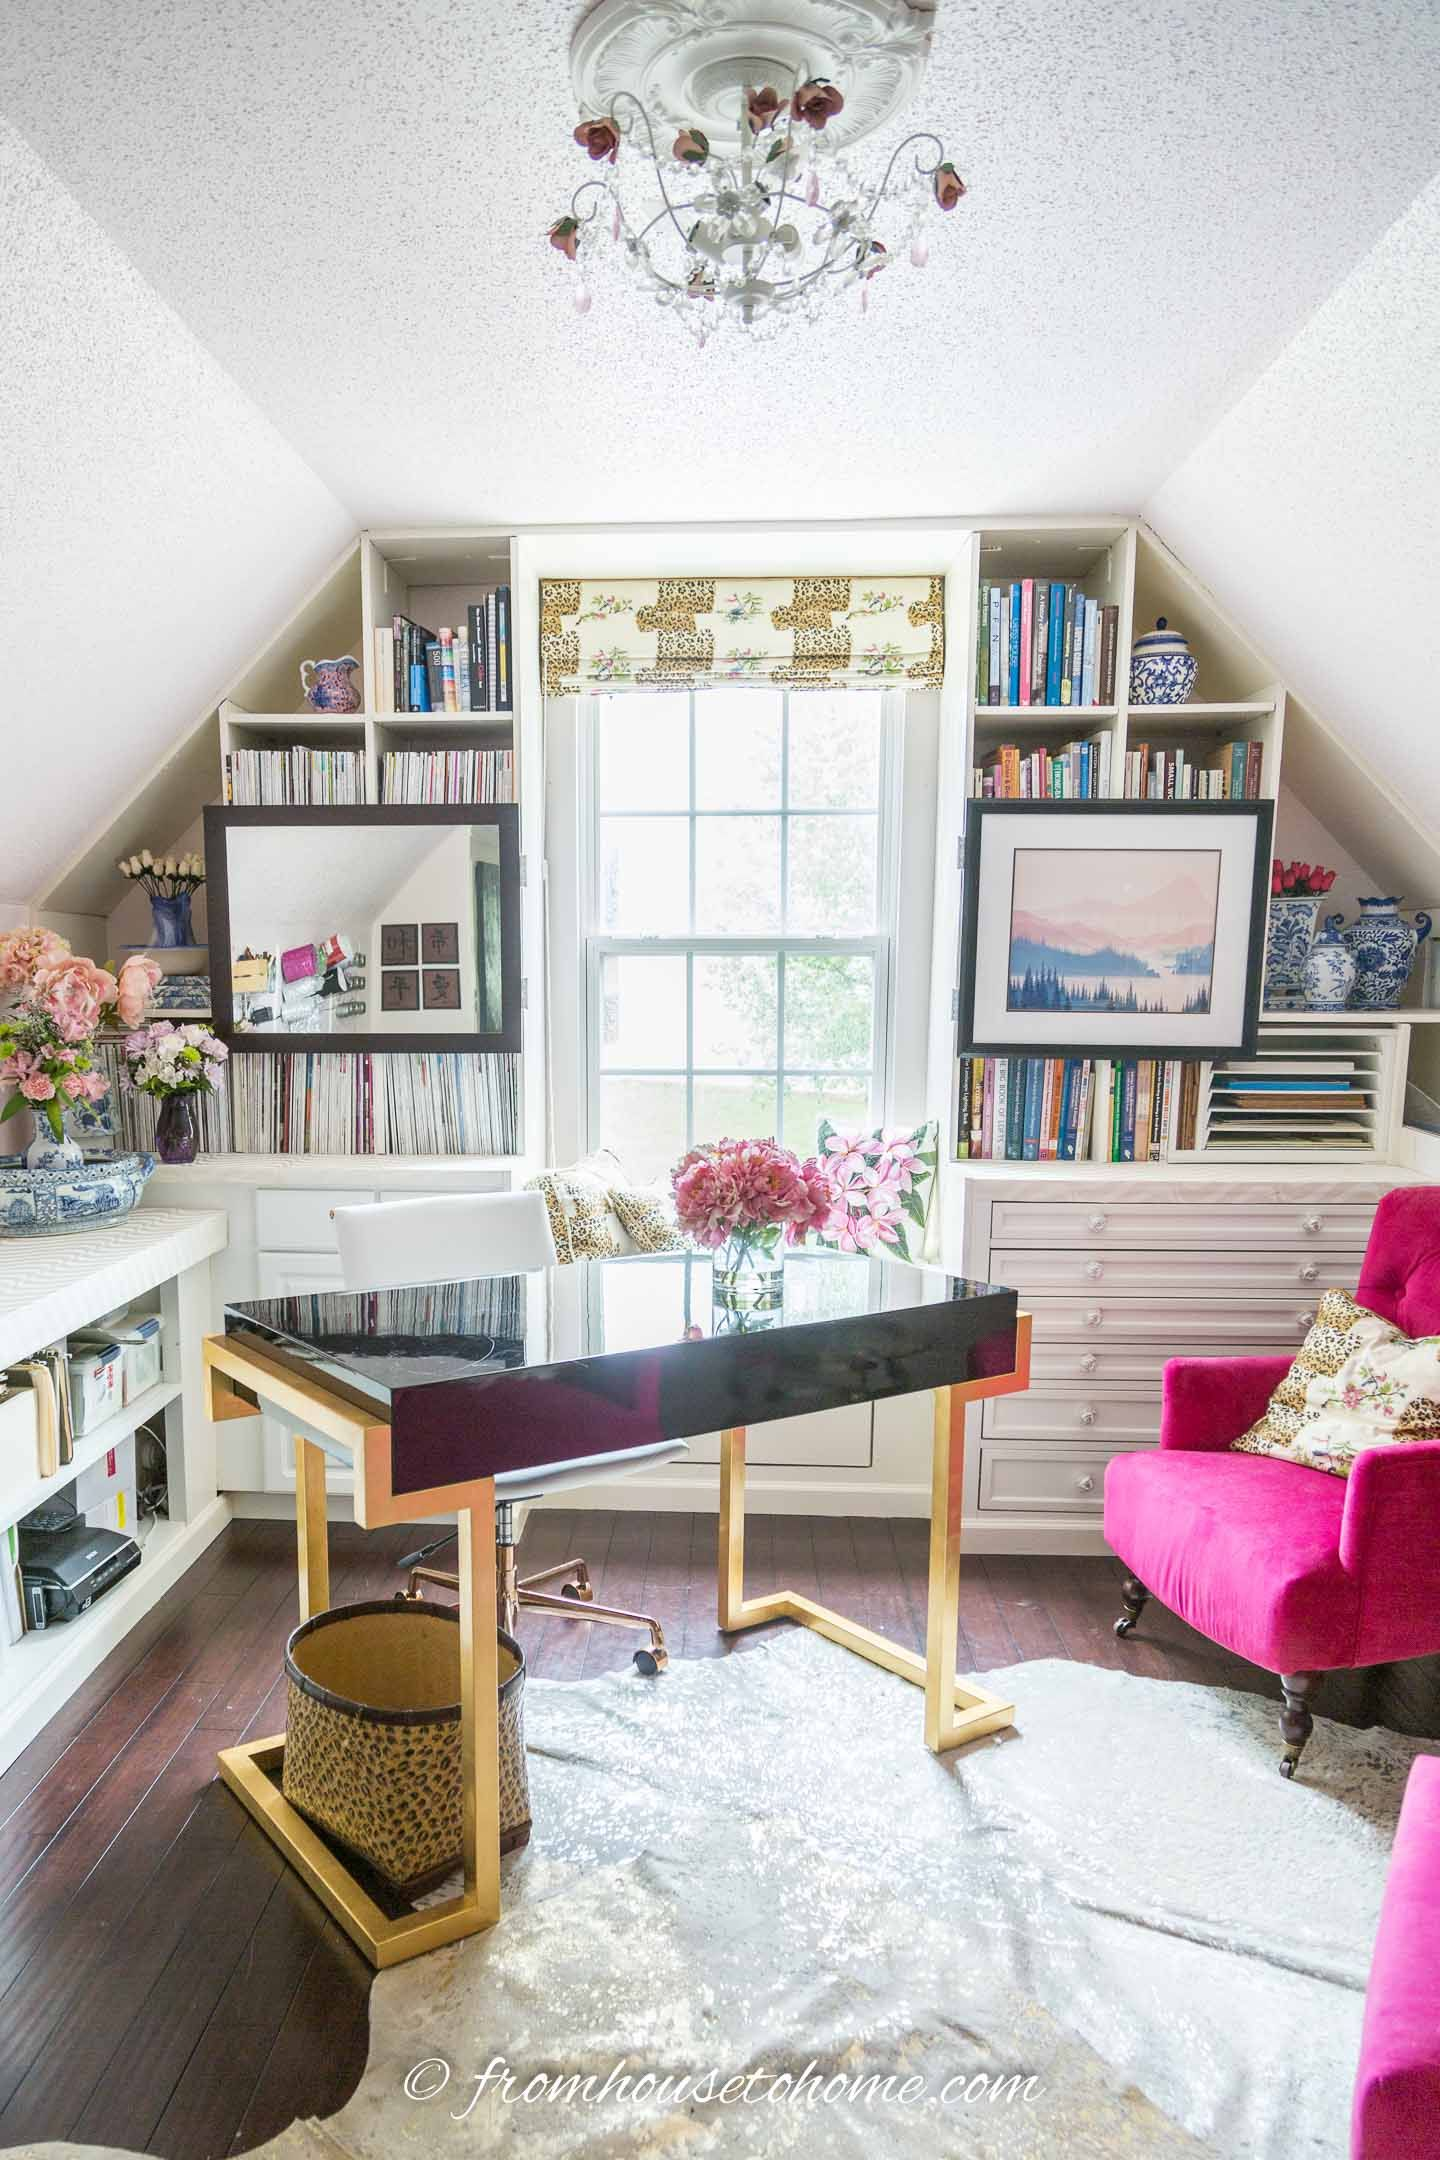 Cozy Reading Room Ideas: 15 Creative Small Home Library ...